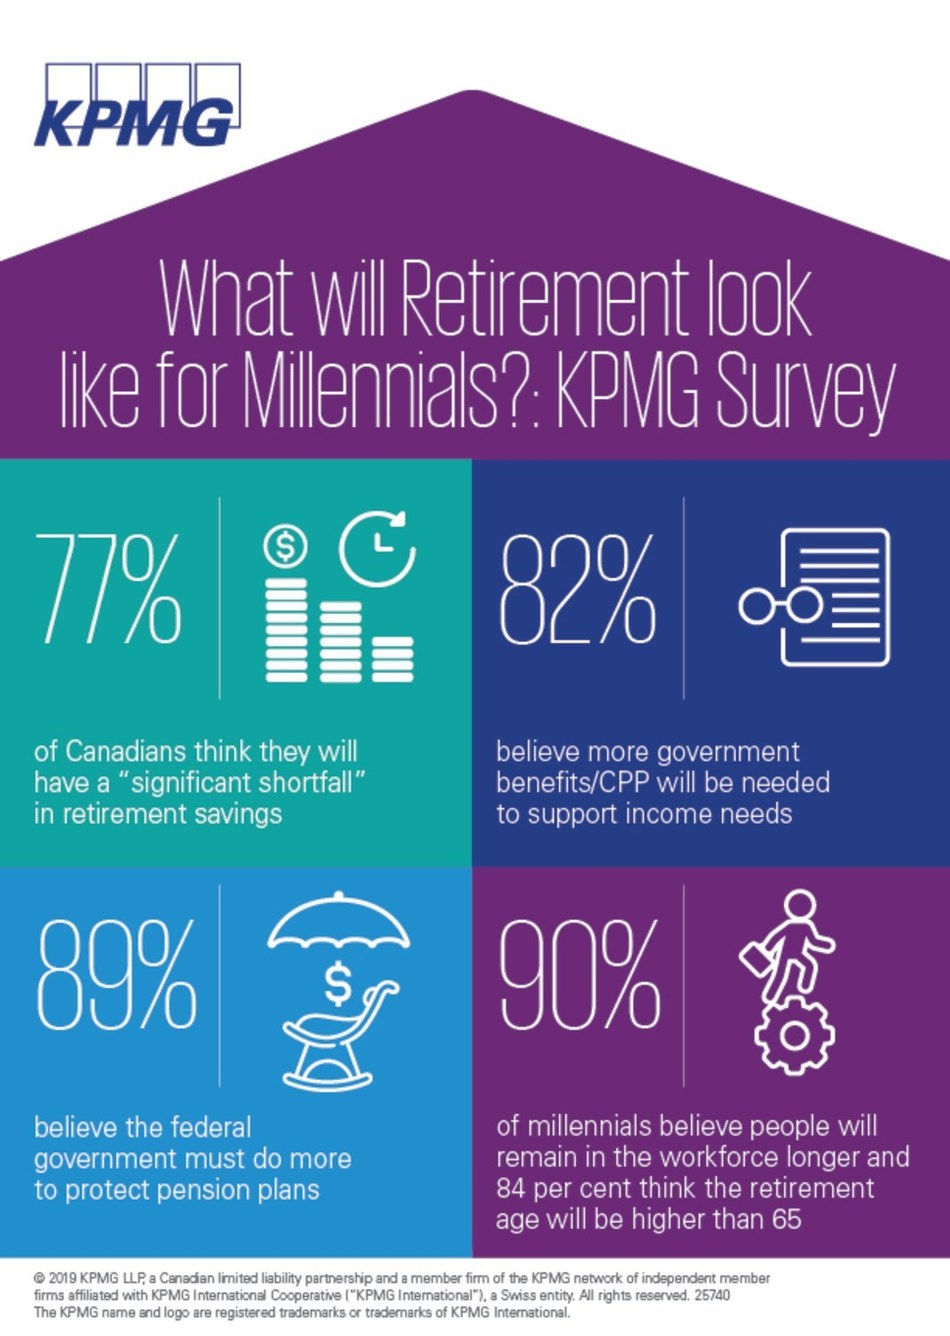 What will Retirement Look Like in 2050?: KPMG in Canada Poll (CNW Group/KPMG LLP)